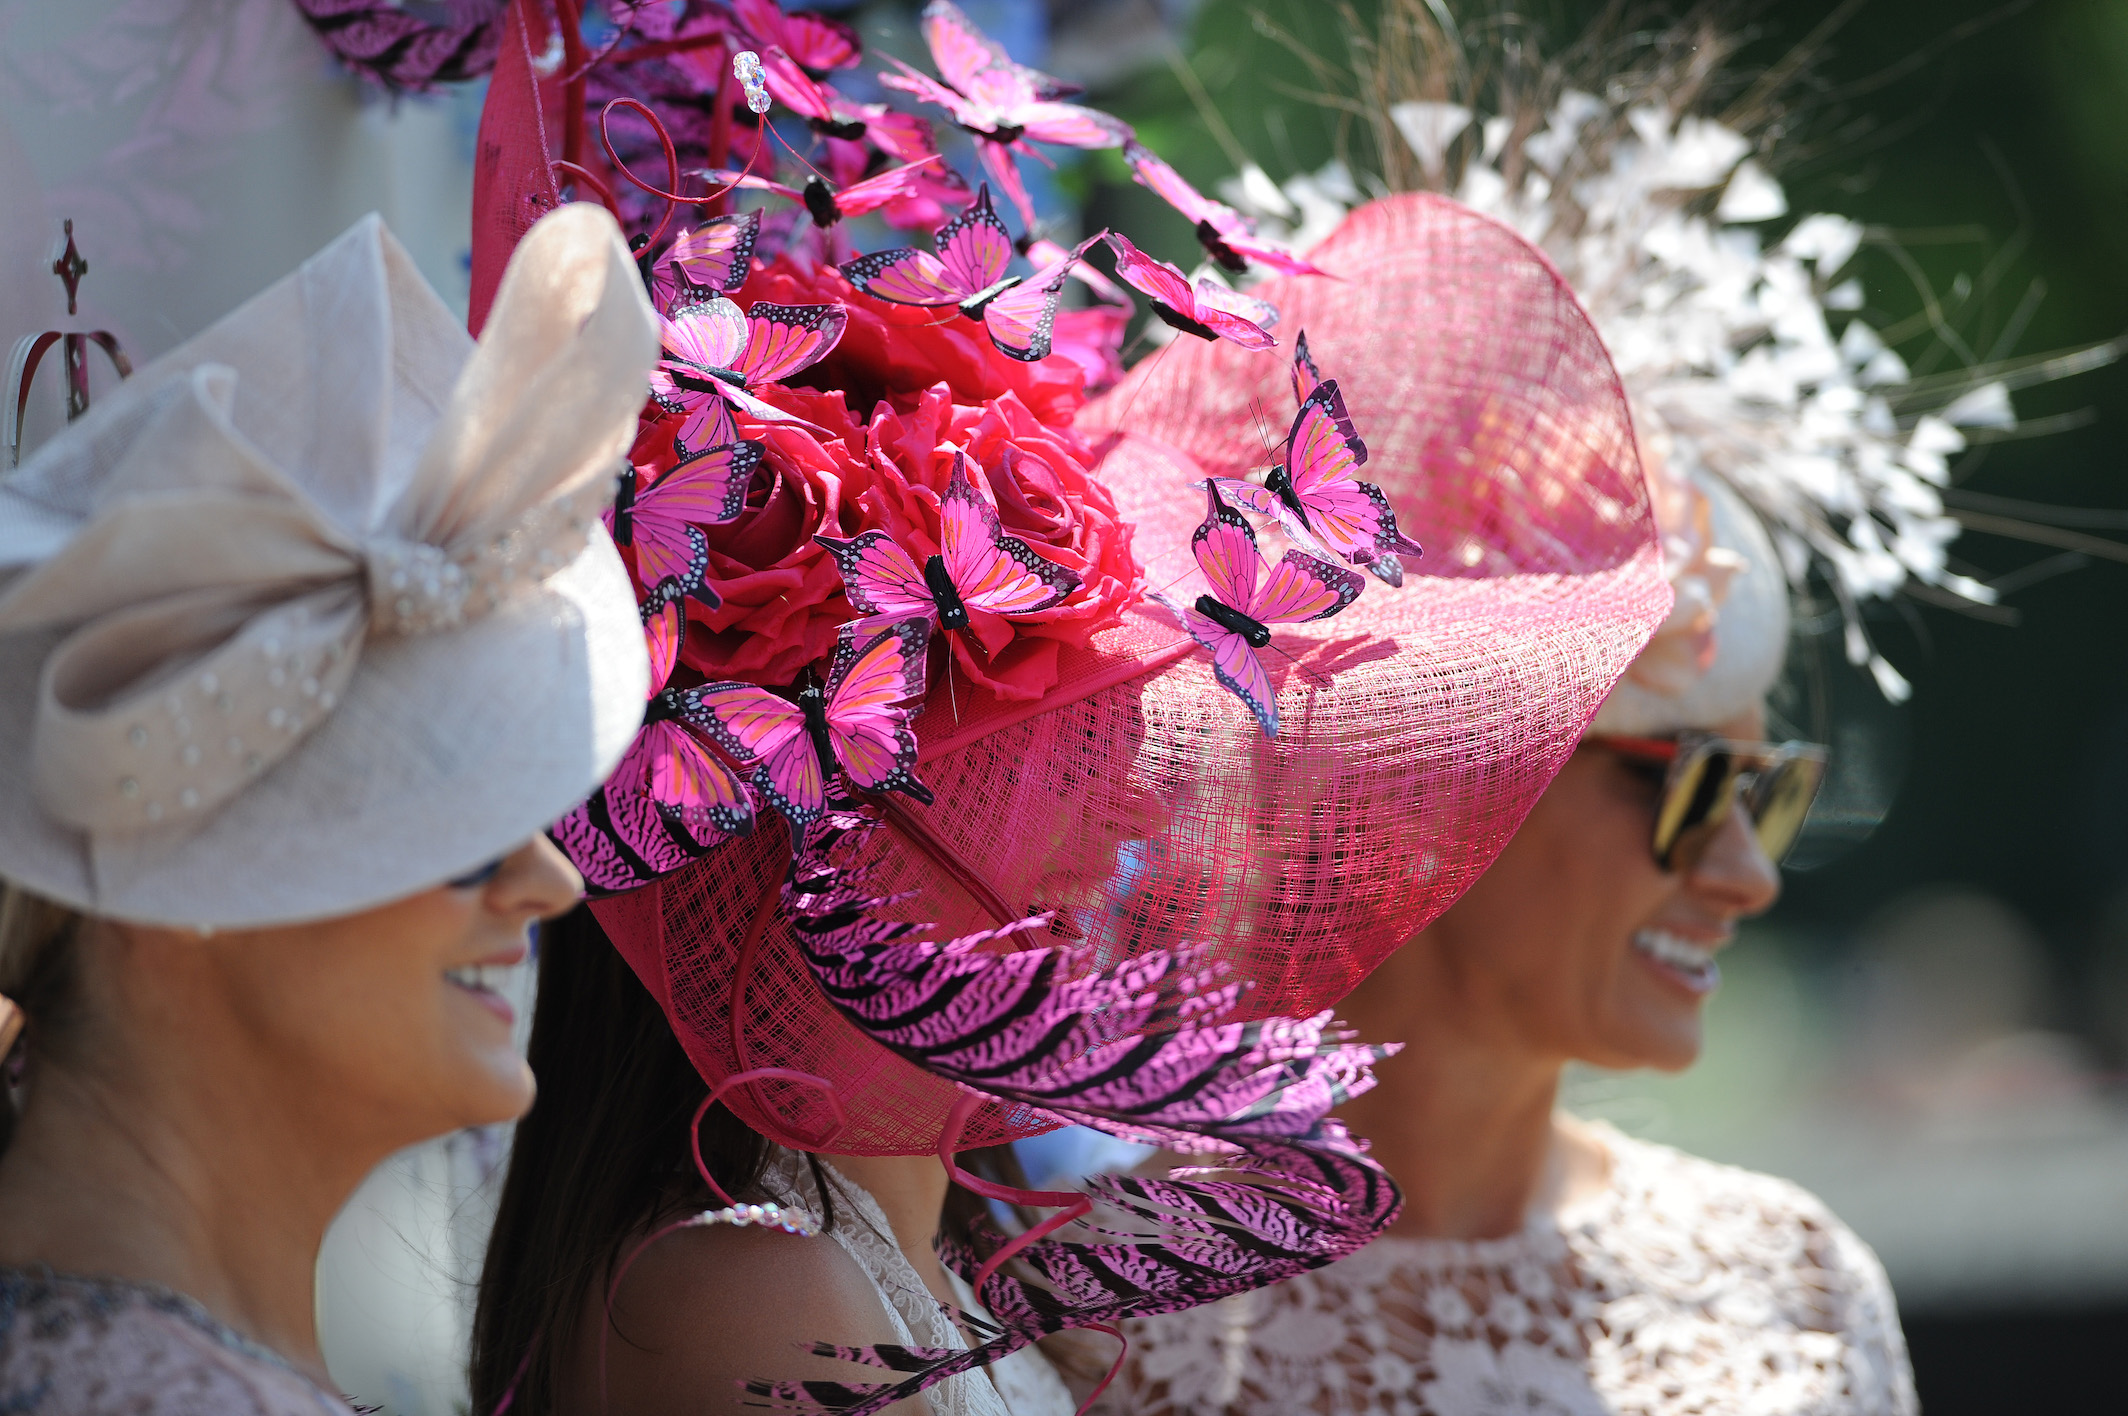 A recent economic review conducted by Ascot estimated that over half of the direct spending of racegoers at the royal meeting goes on fashion and related beauty treatments. Photo: Racingfotos.com